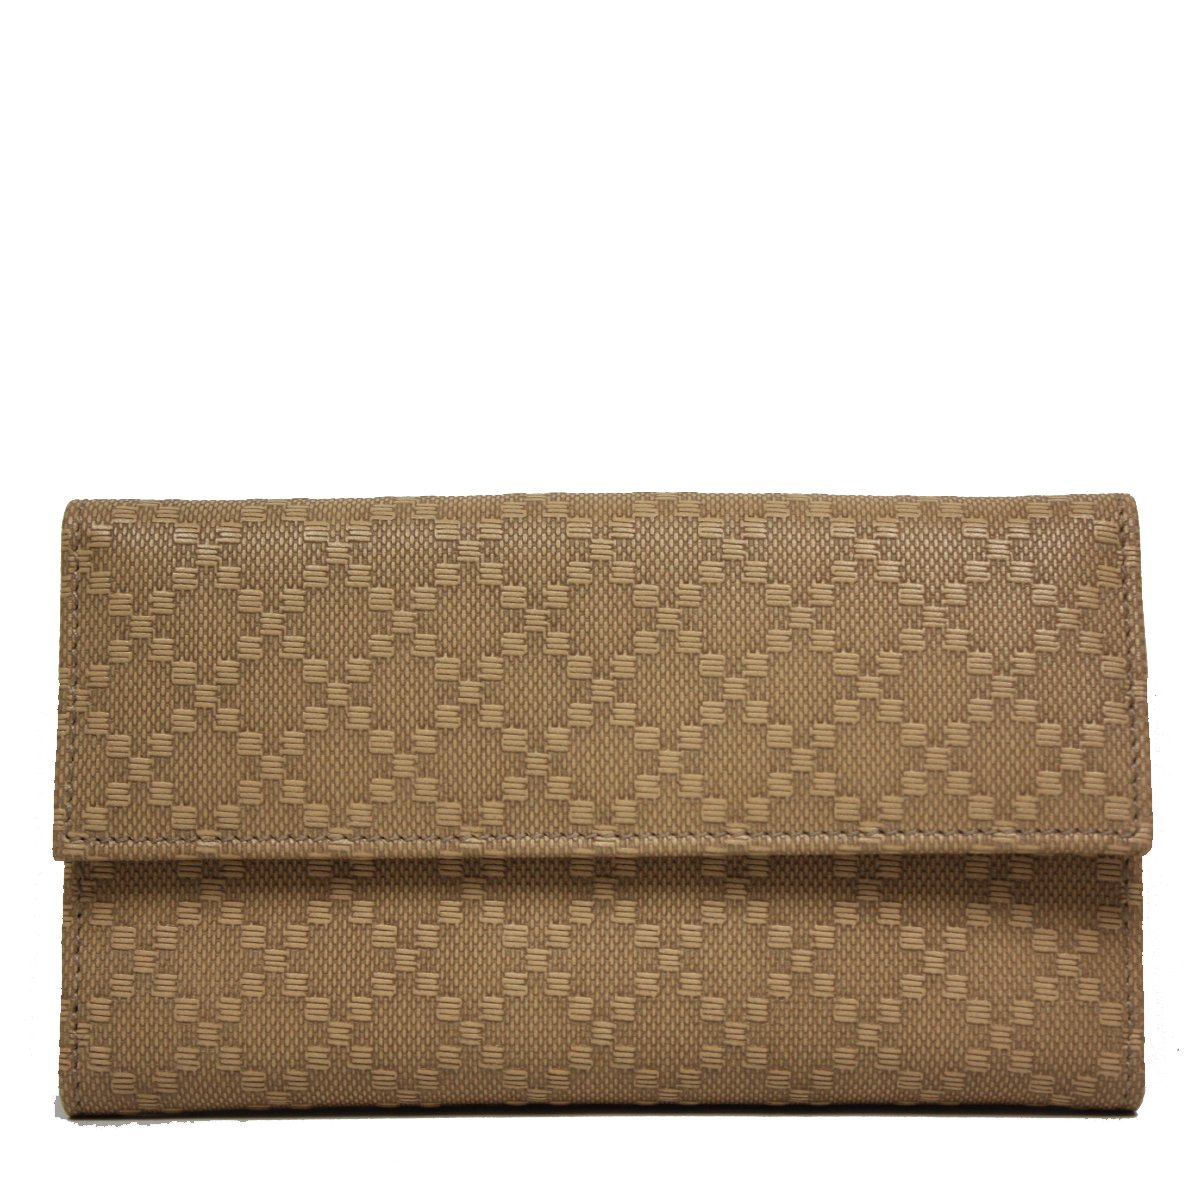 Gucci Diamante Leather Flap Wallet 143389, Tan Brown